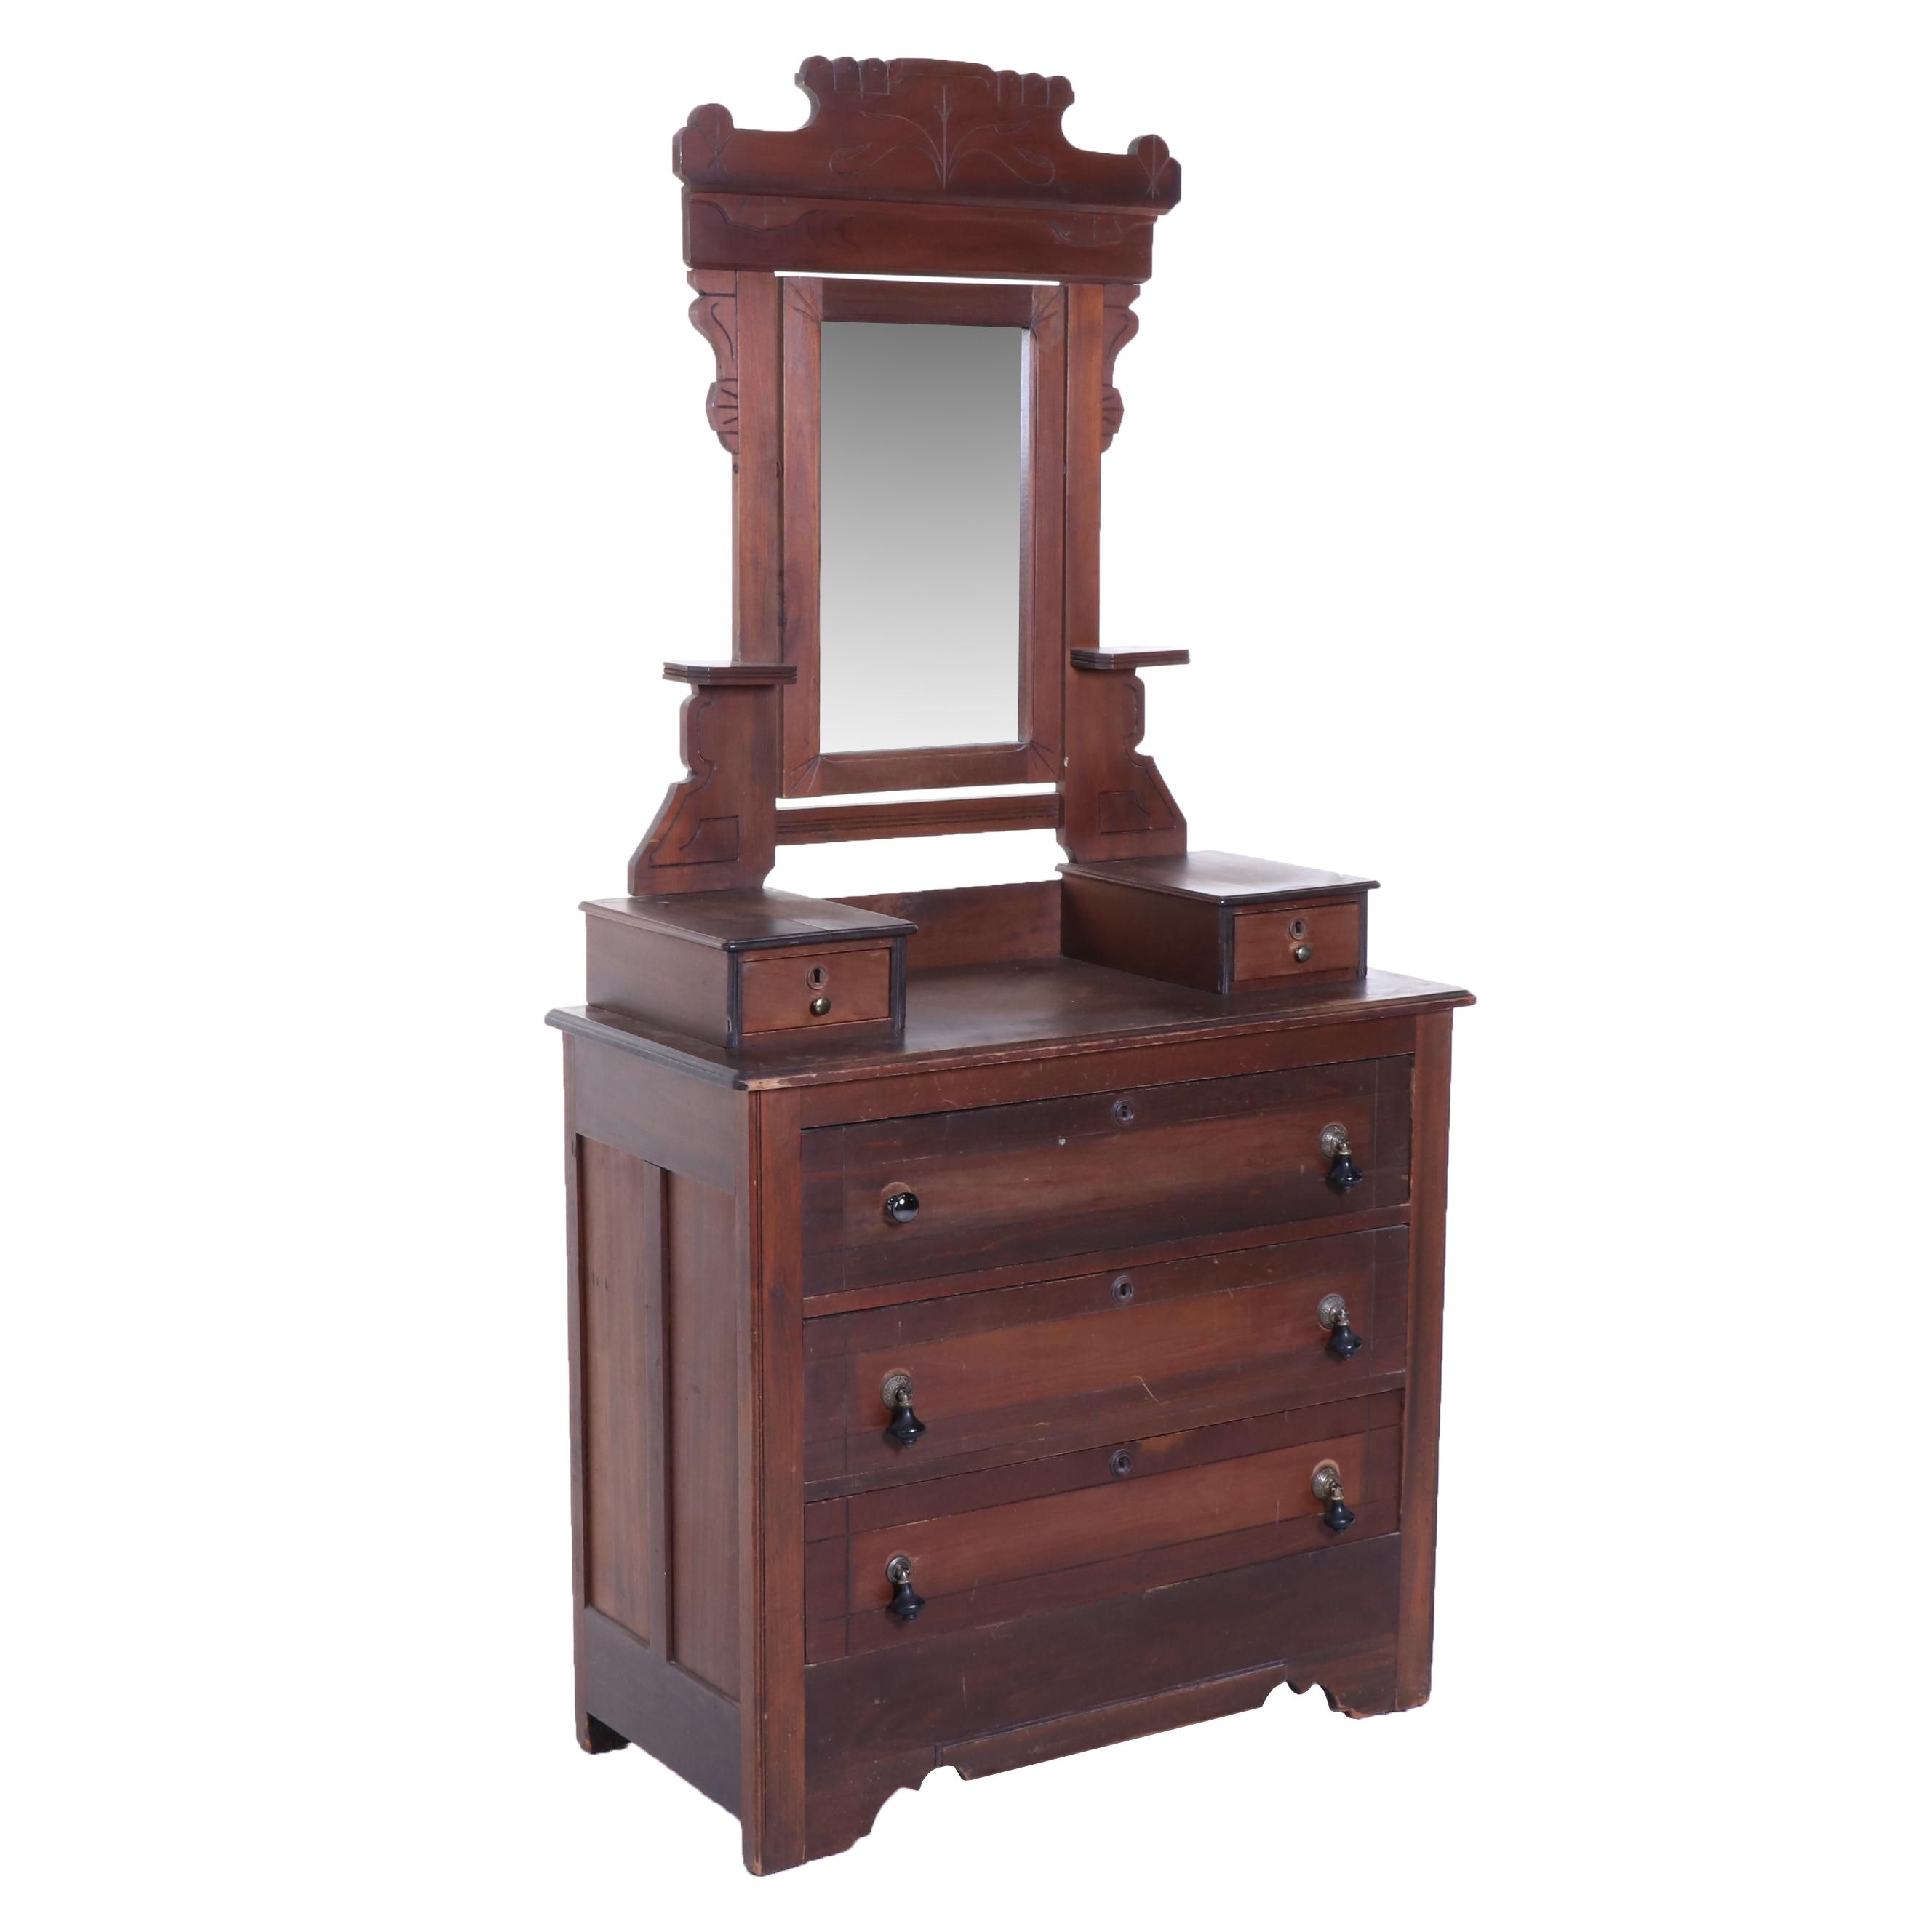 Victorian, Eastlake Style Walnut Dressing Table with Mirror, Late 19th Century